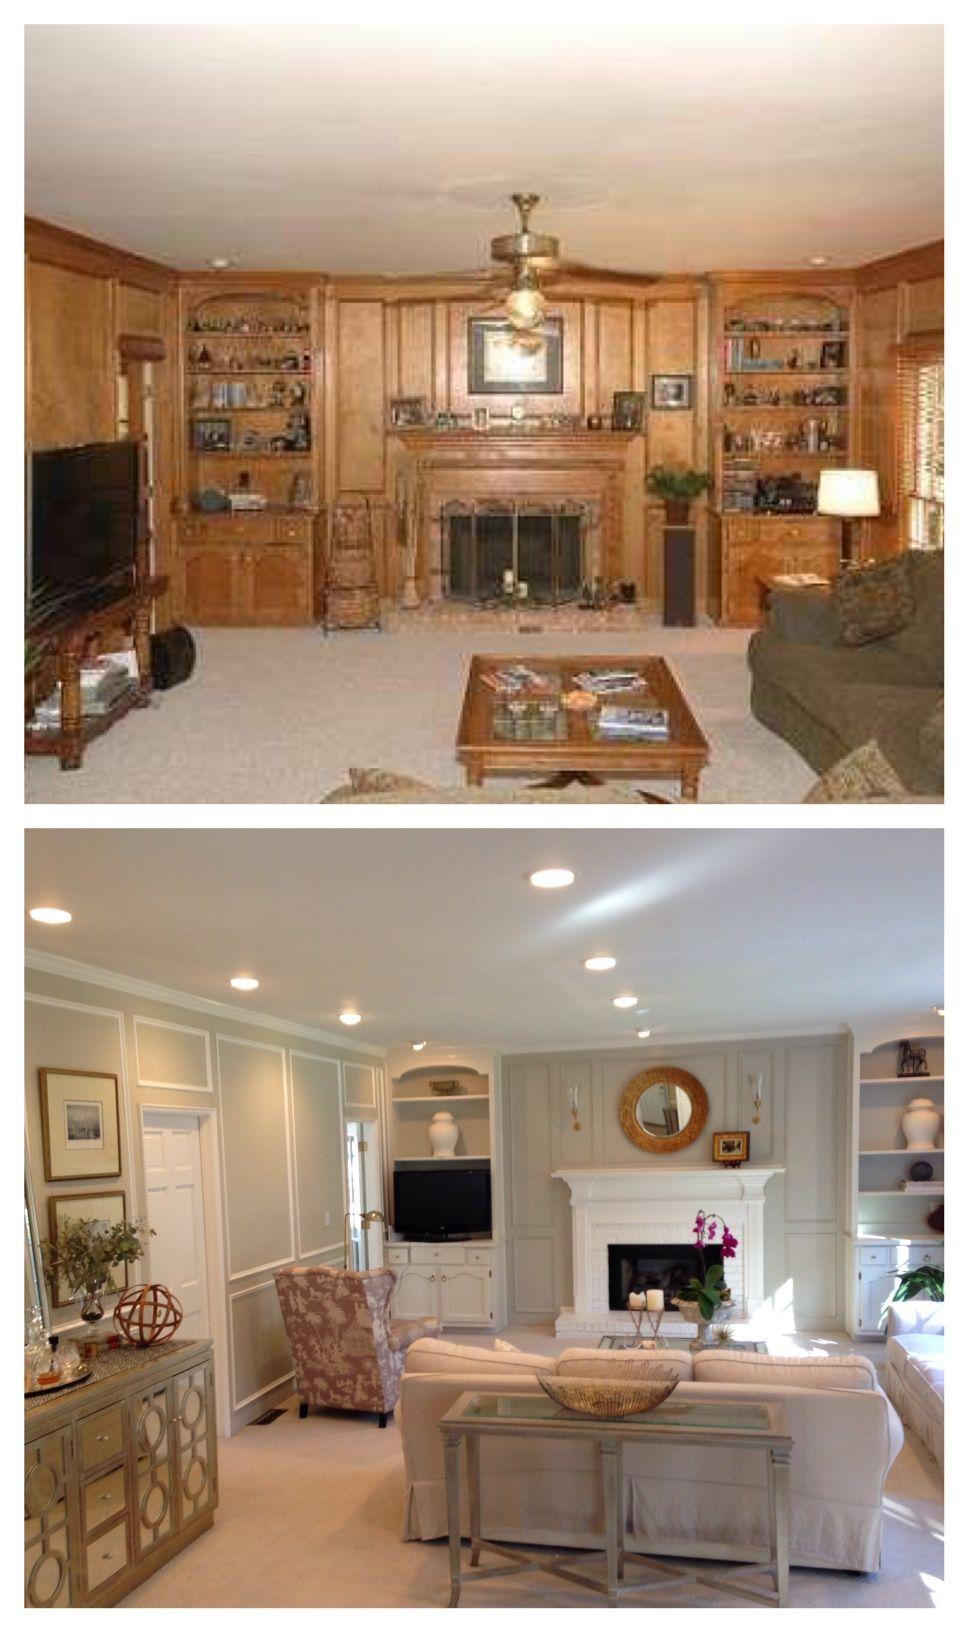 Ideas For Rooms With Wood Paneling: Living Room Before And After. Paneling Painted, Updated